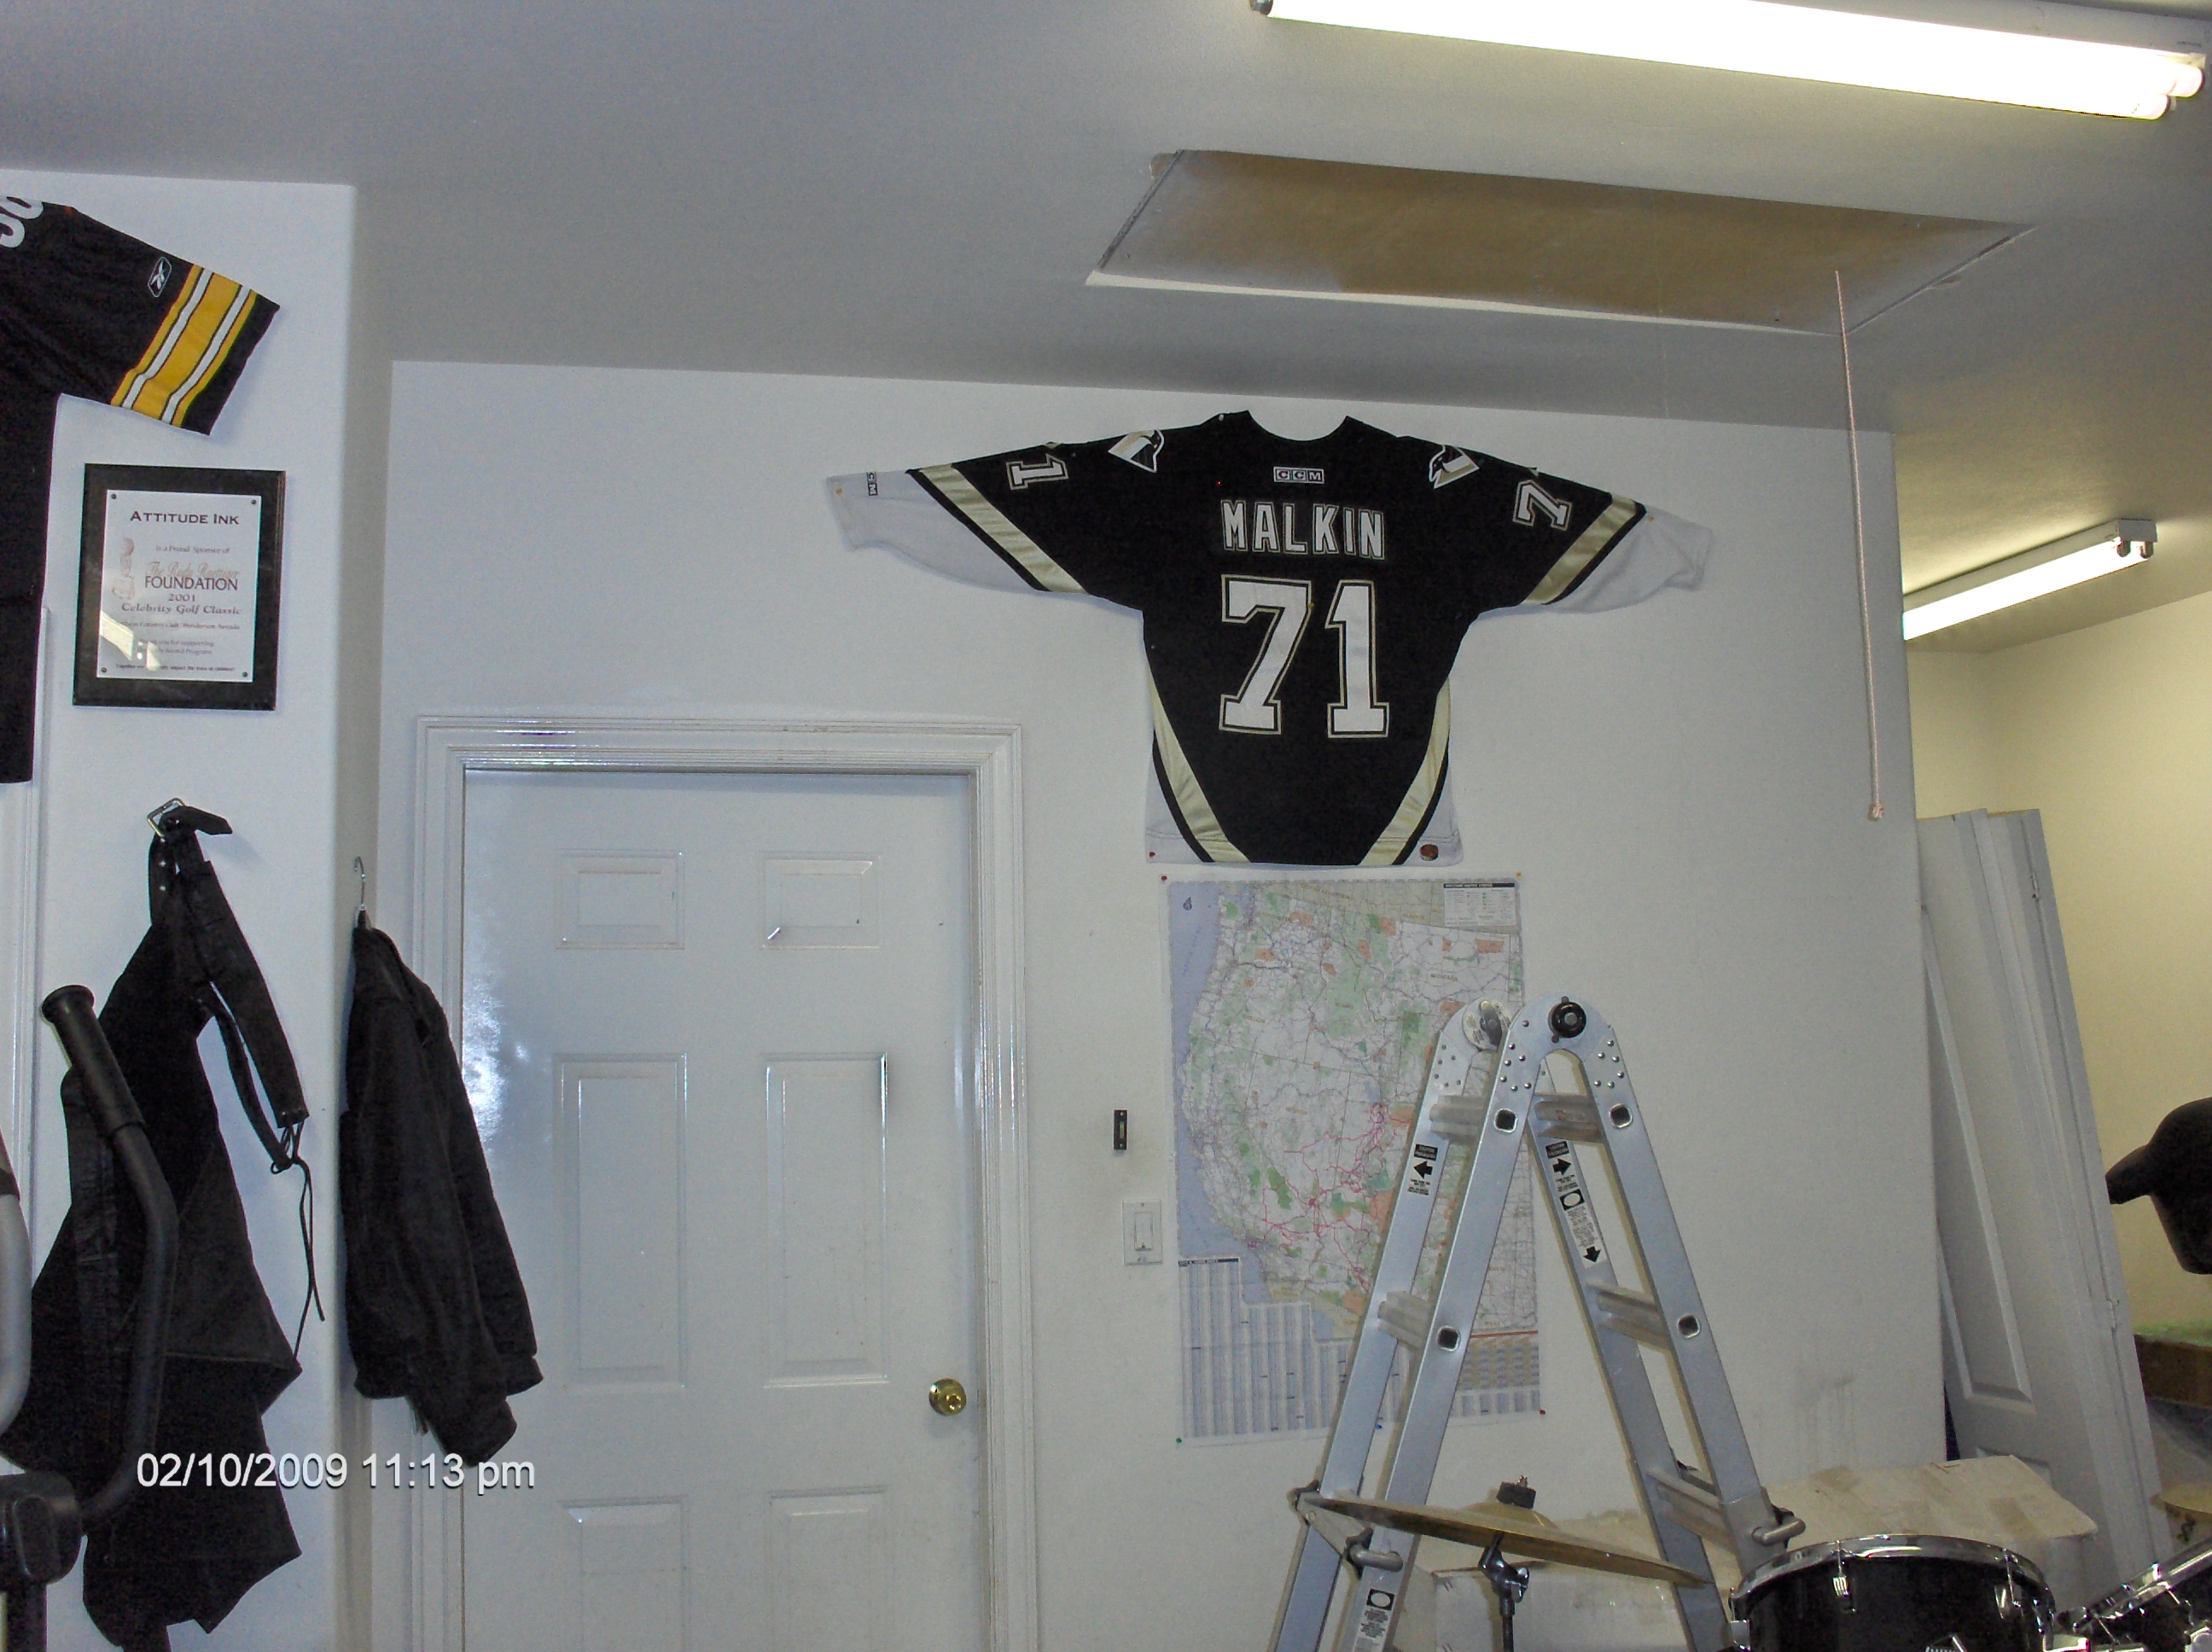 The fortress of Solitude - Map of my Journeys, Evgeni Malkin Jersey.